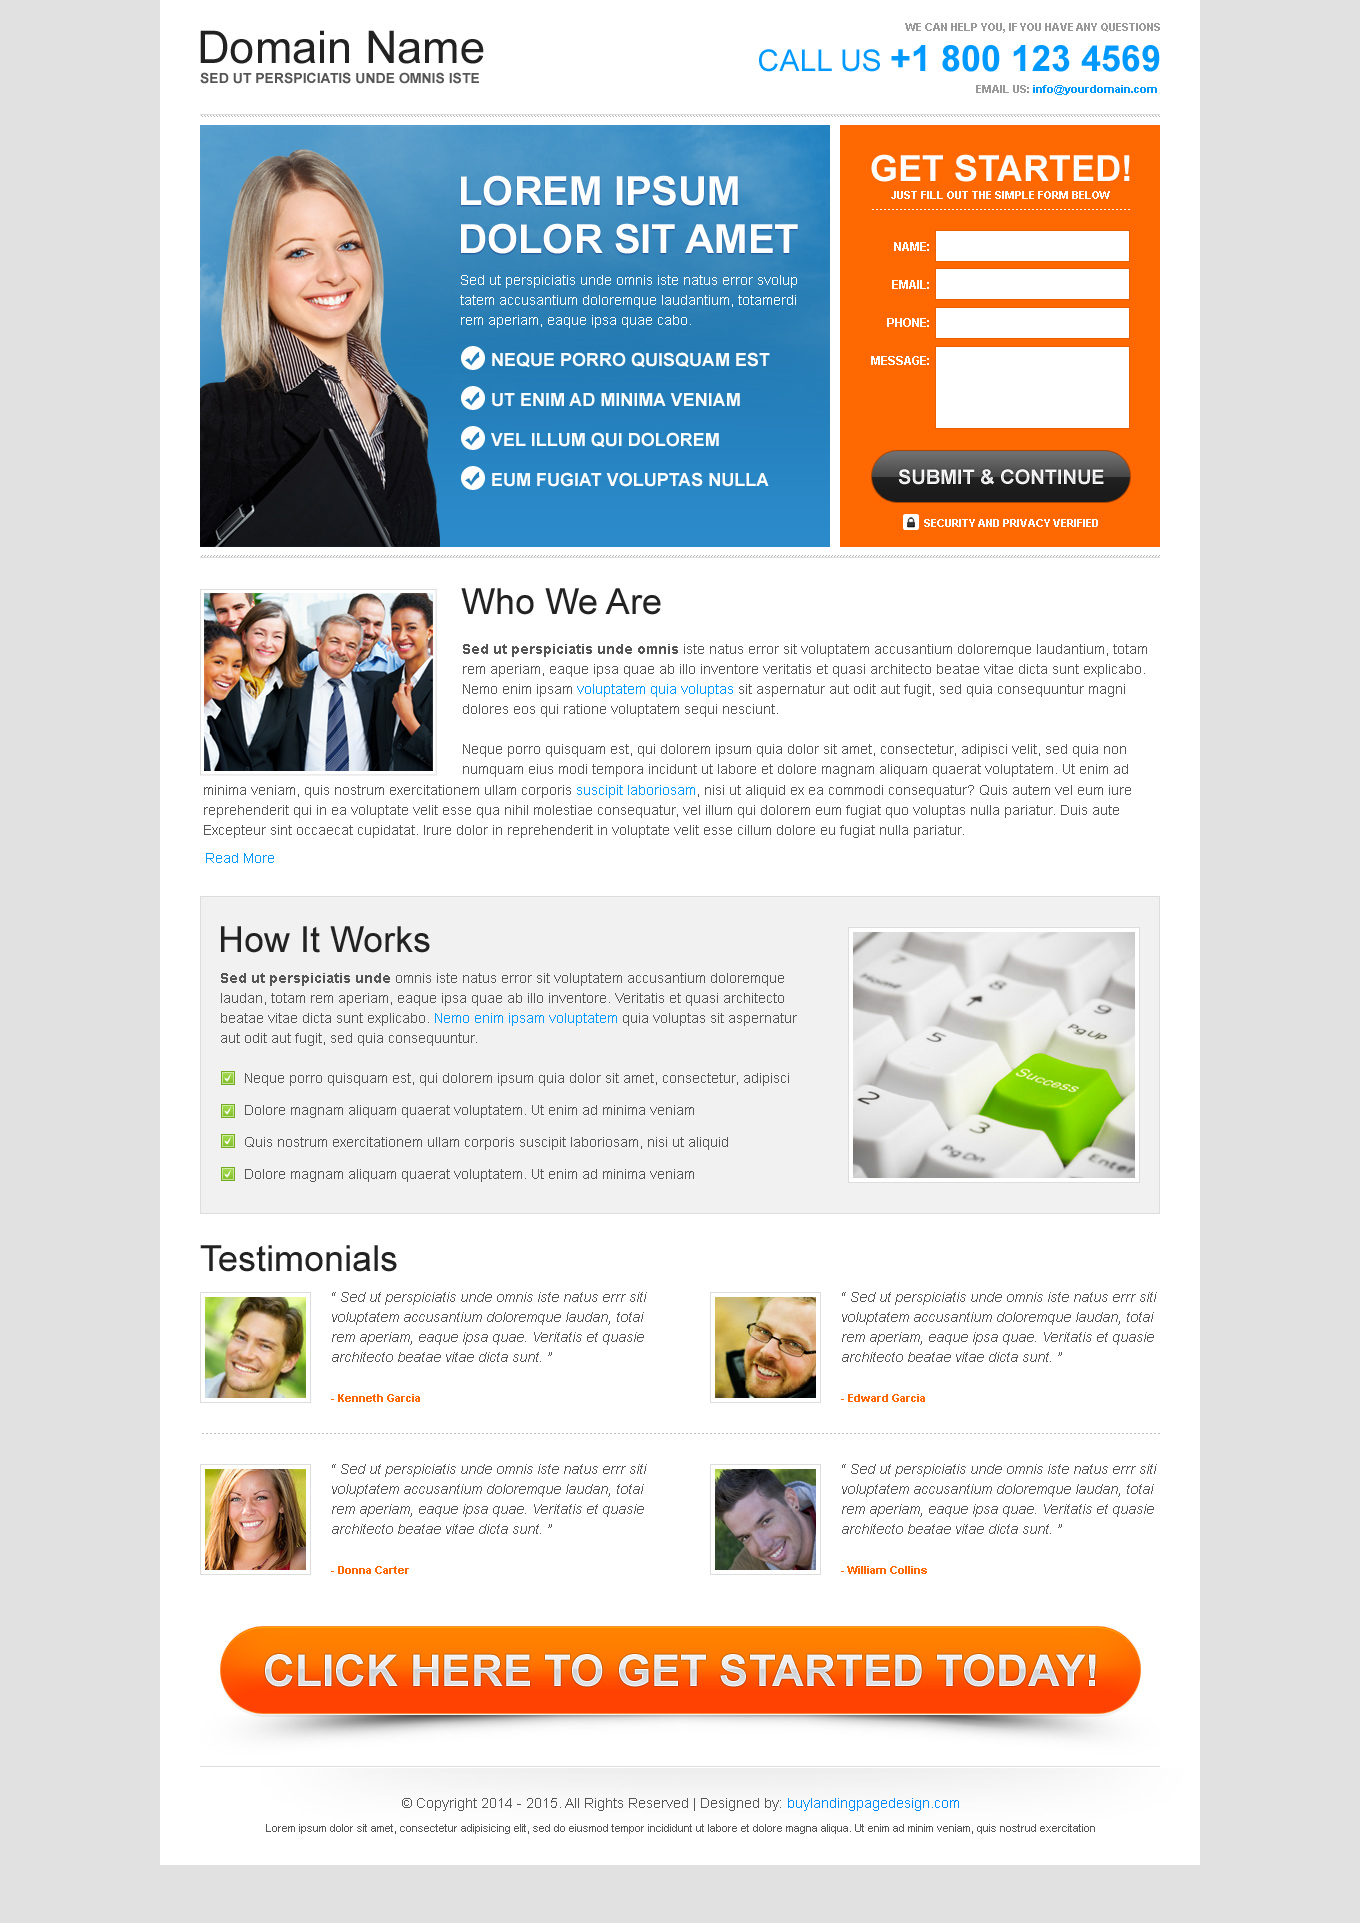 Free landing page design templates for free download psd/html ...